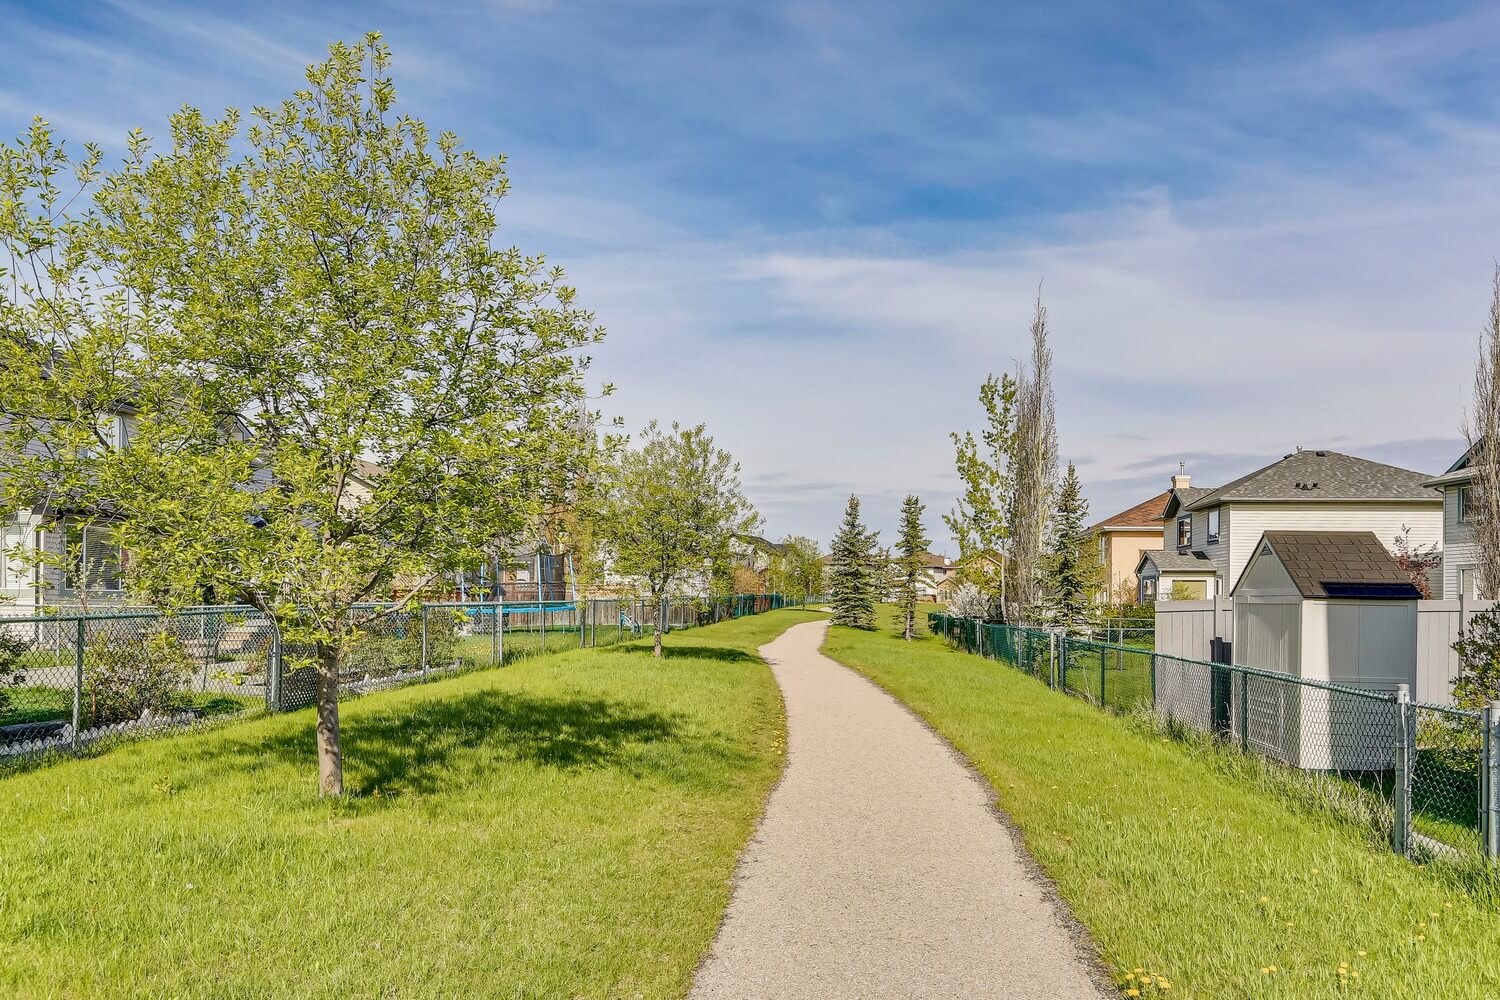 20190523__133 Somerglen Way SW__0053_sm.jpg